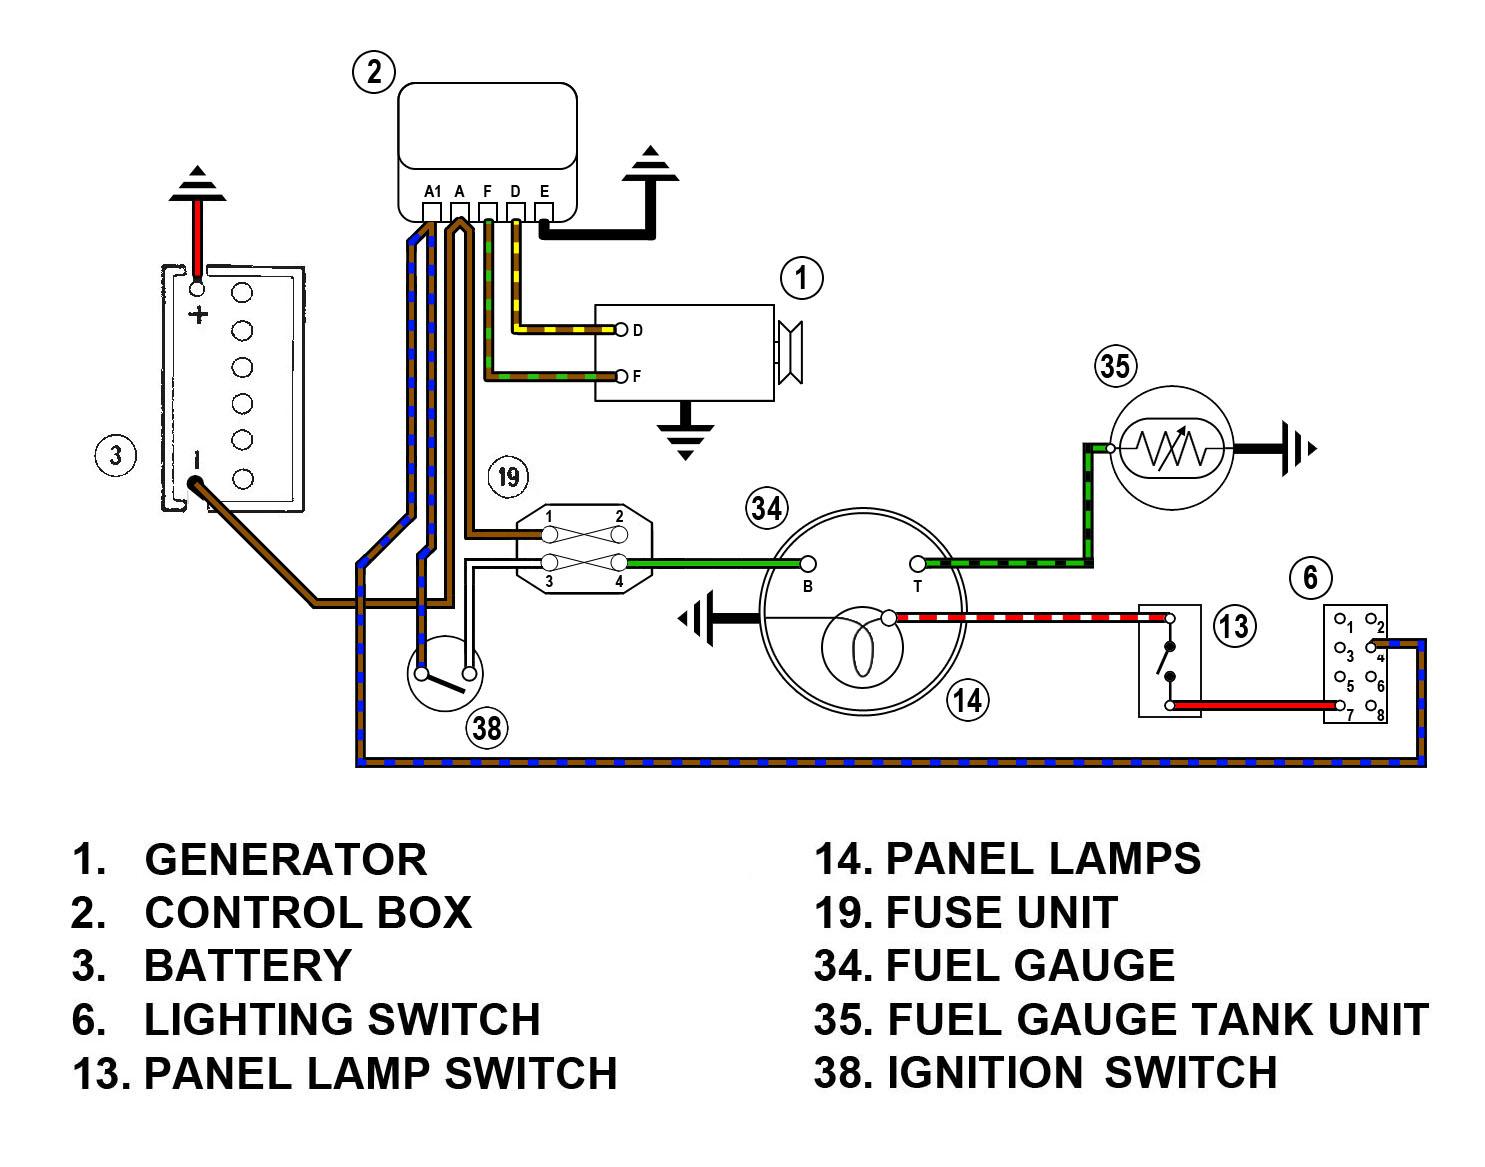 Ford Fuel Gauge Wiring Wiring Diagram Schematic - Fuel Gauge Sending Unit Wiring Diagram